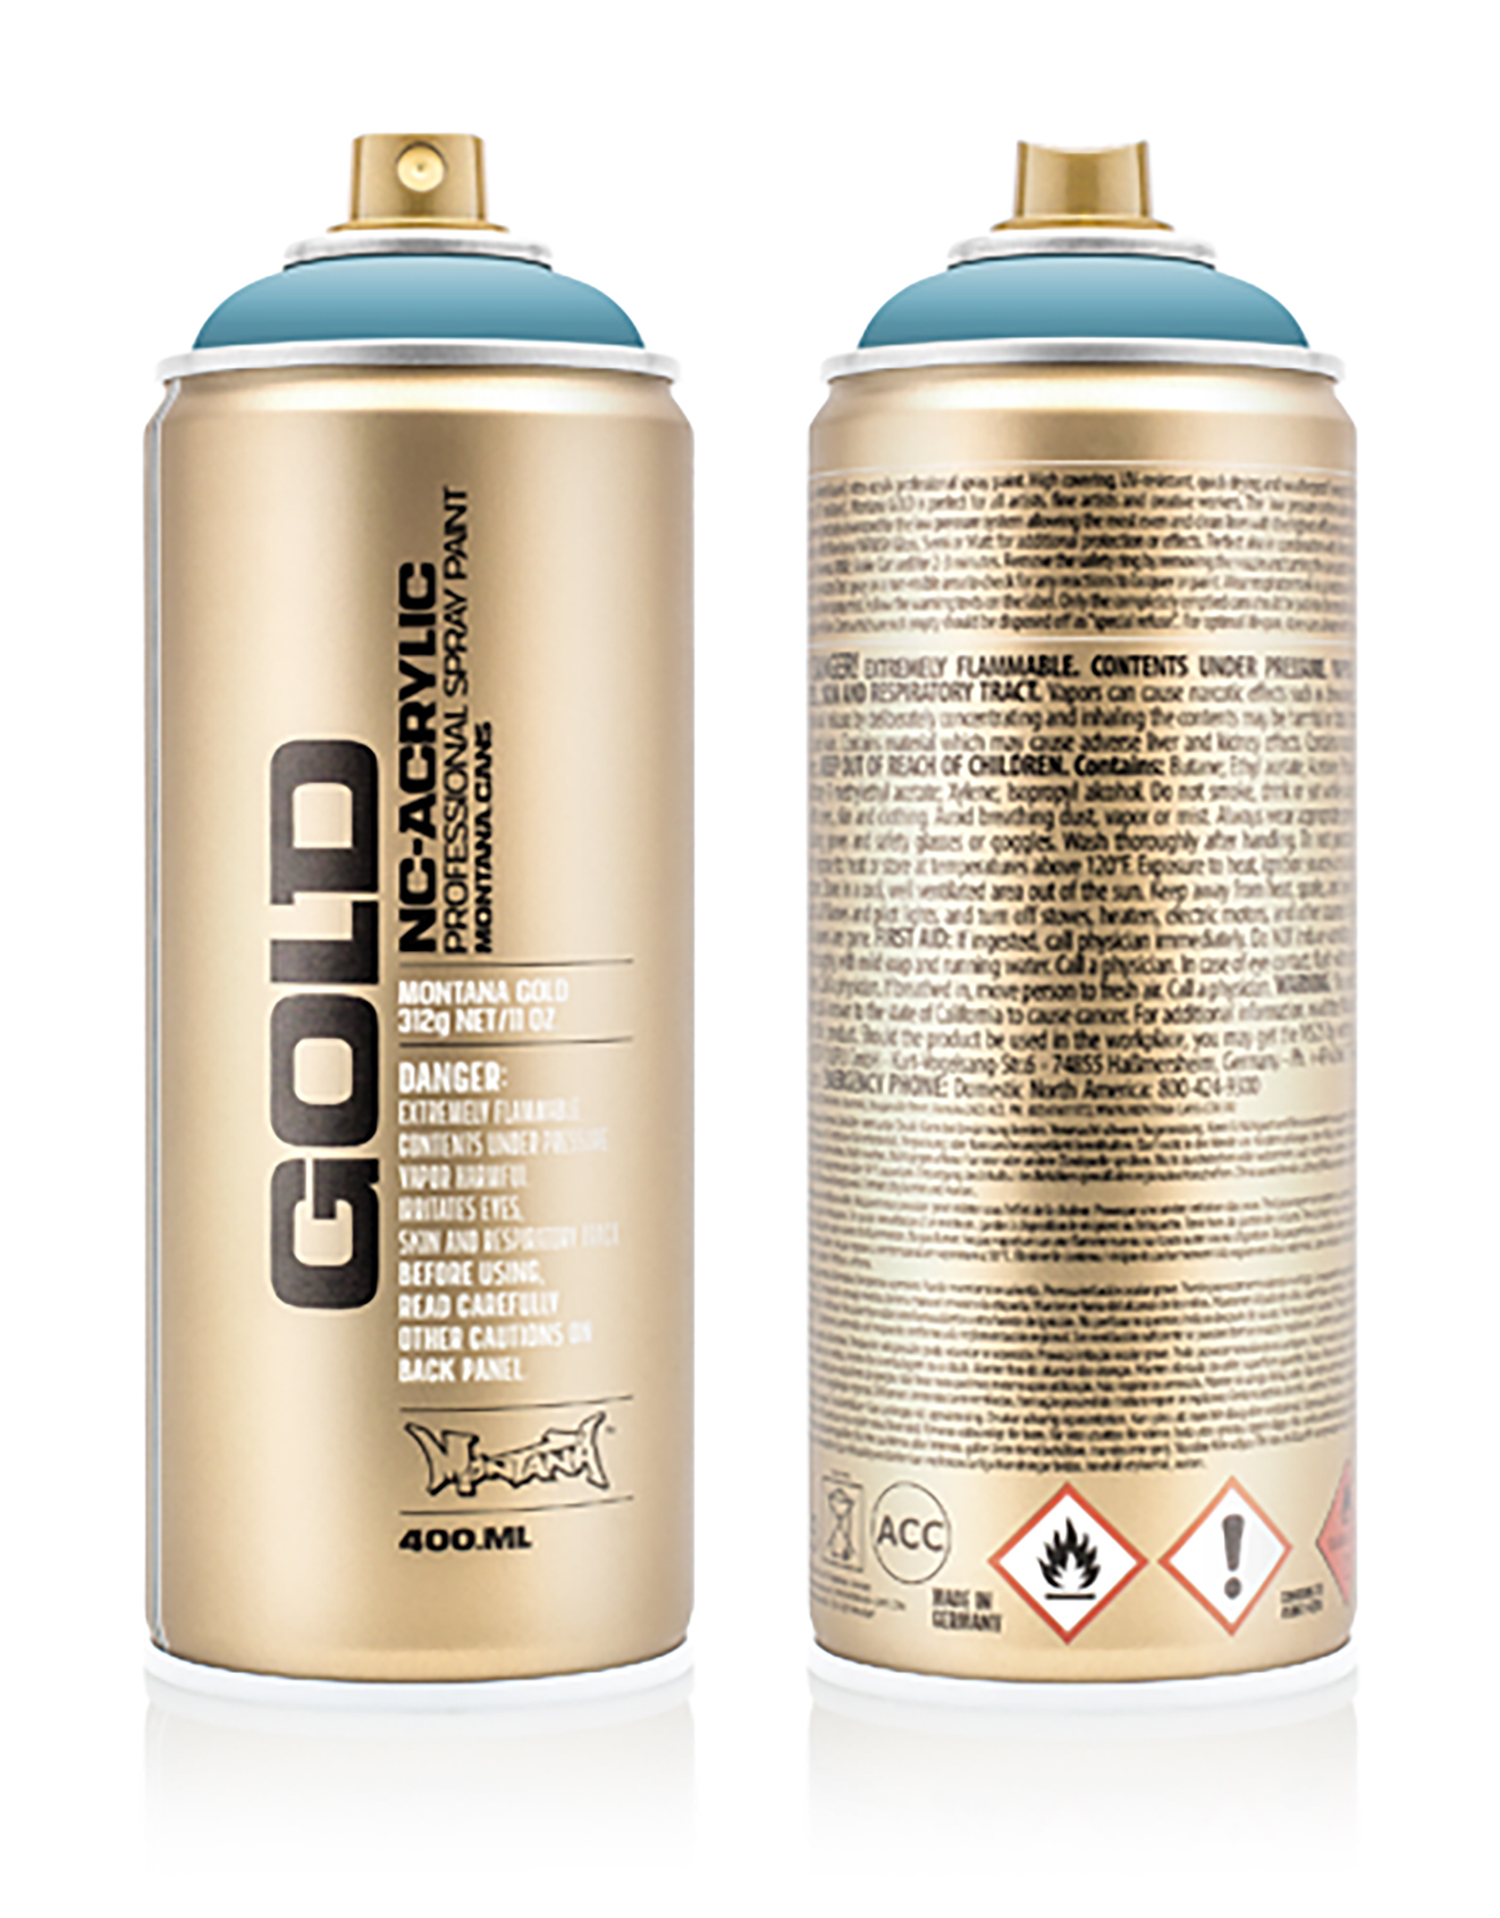 MONTANA-GOLD-SPRAY-400ML-G-5120